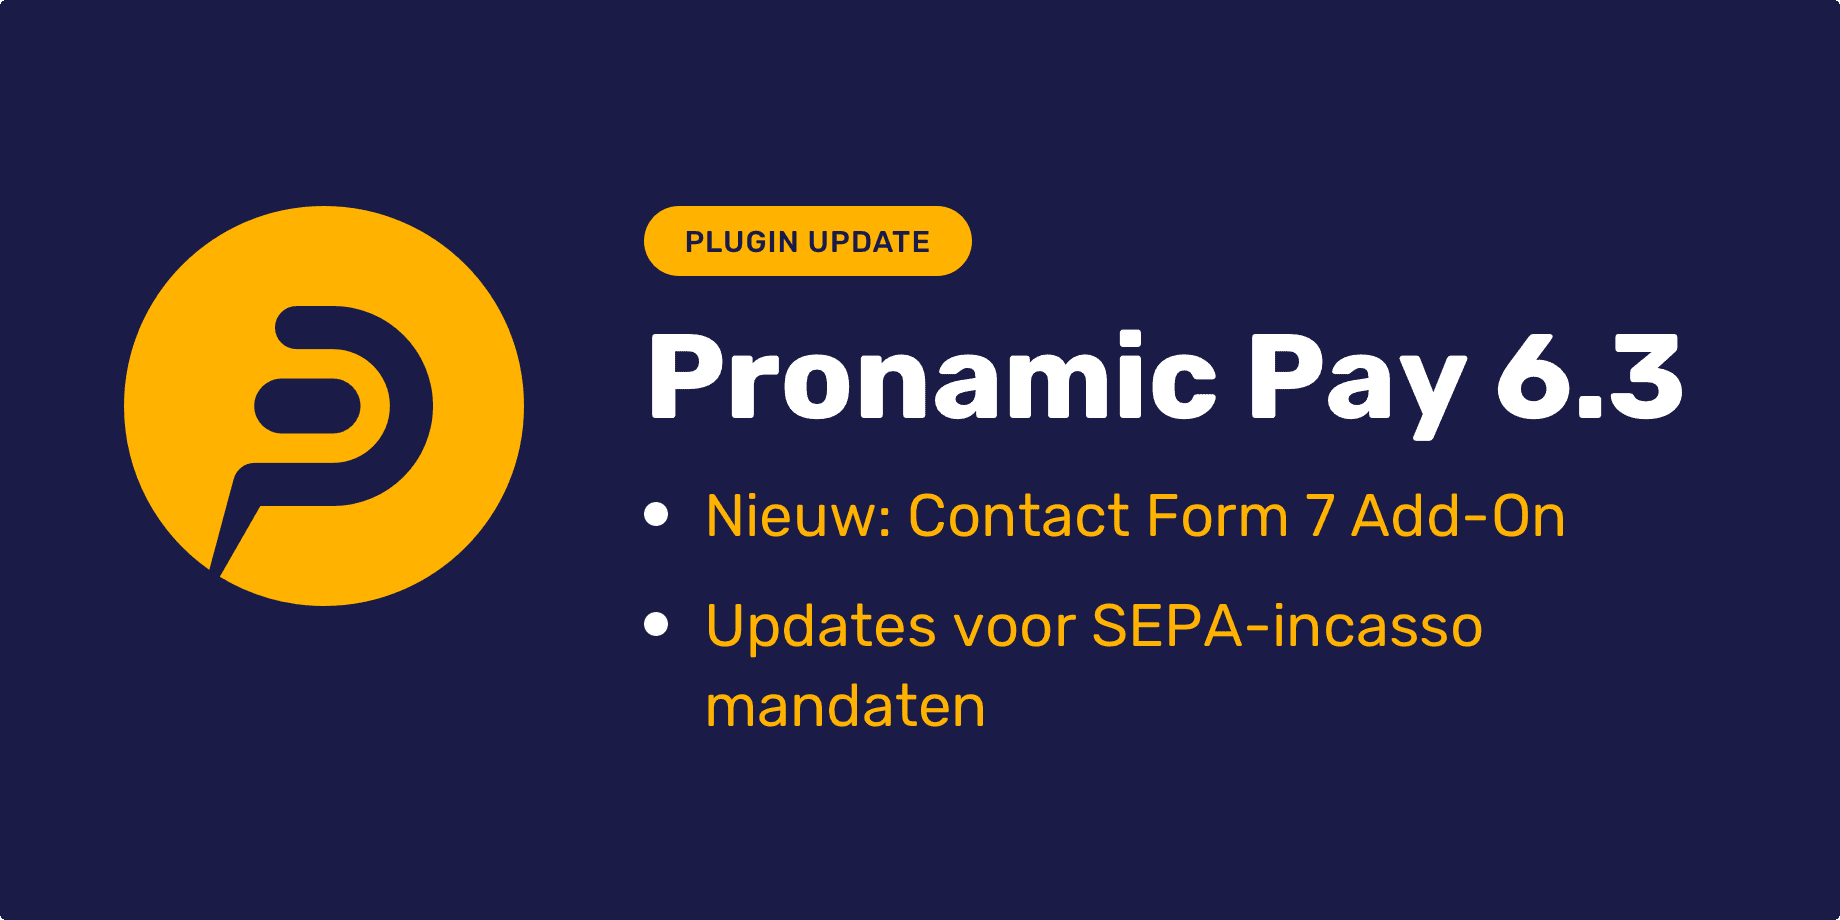 Pronamic Pay 6.3 Contact Form 7